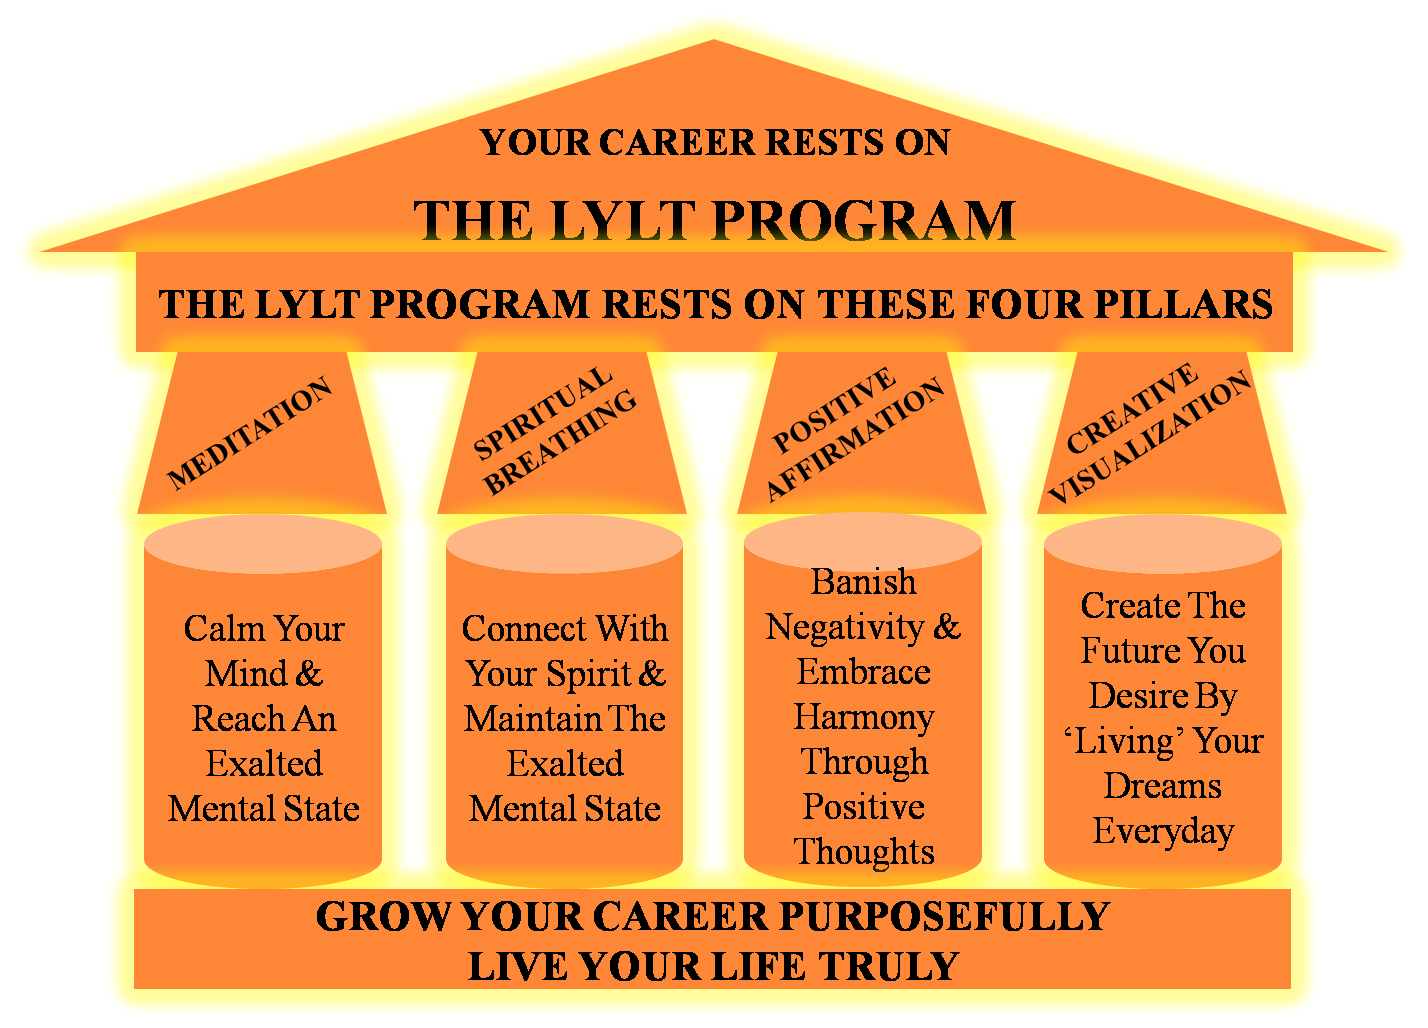 What the LYLT program is